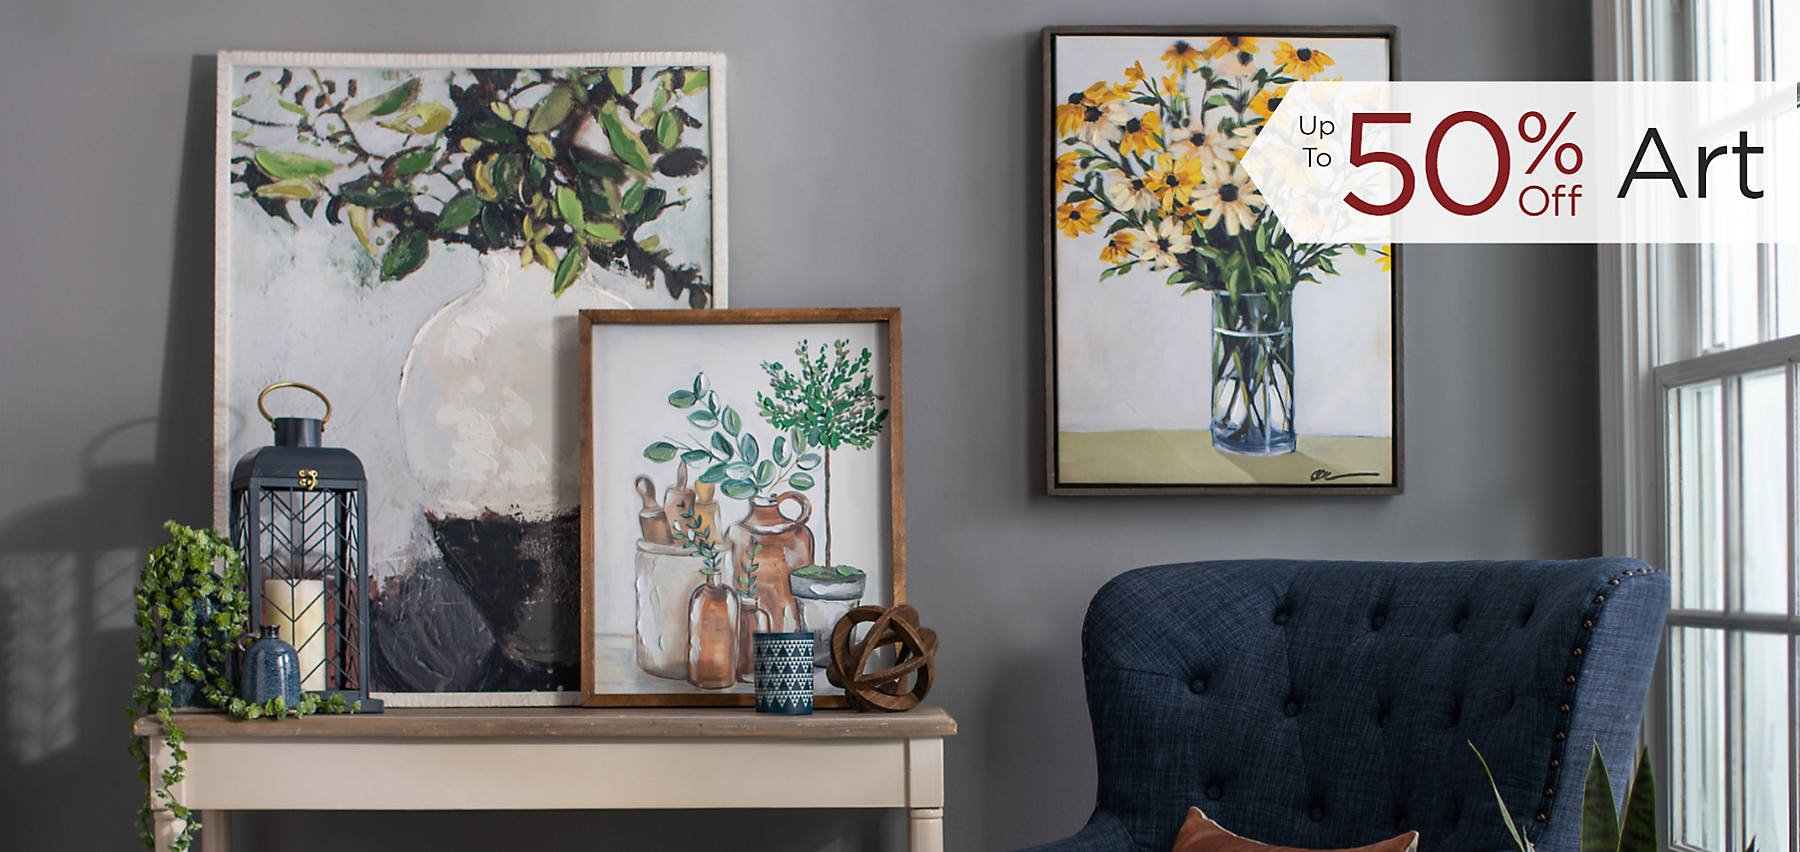 Up to 50% Off Art